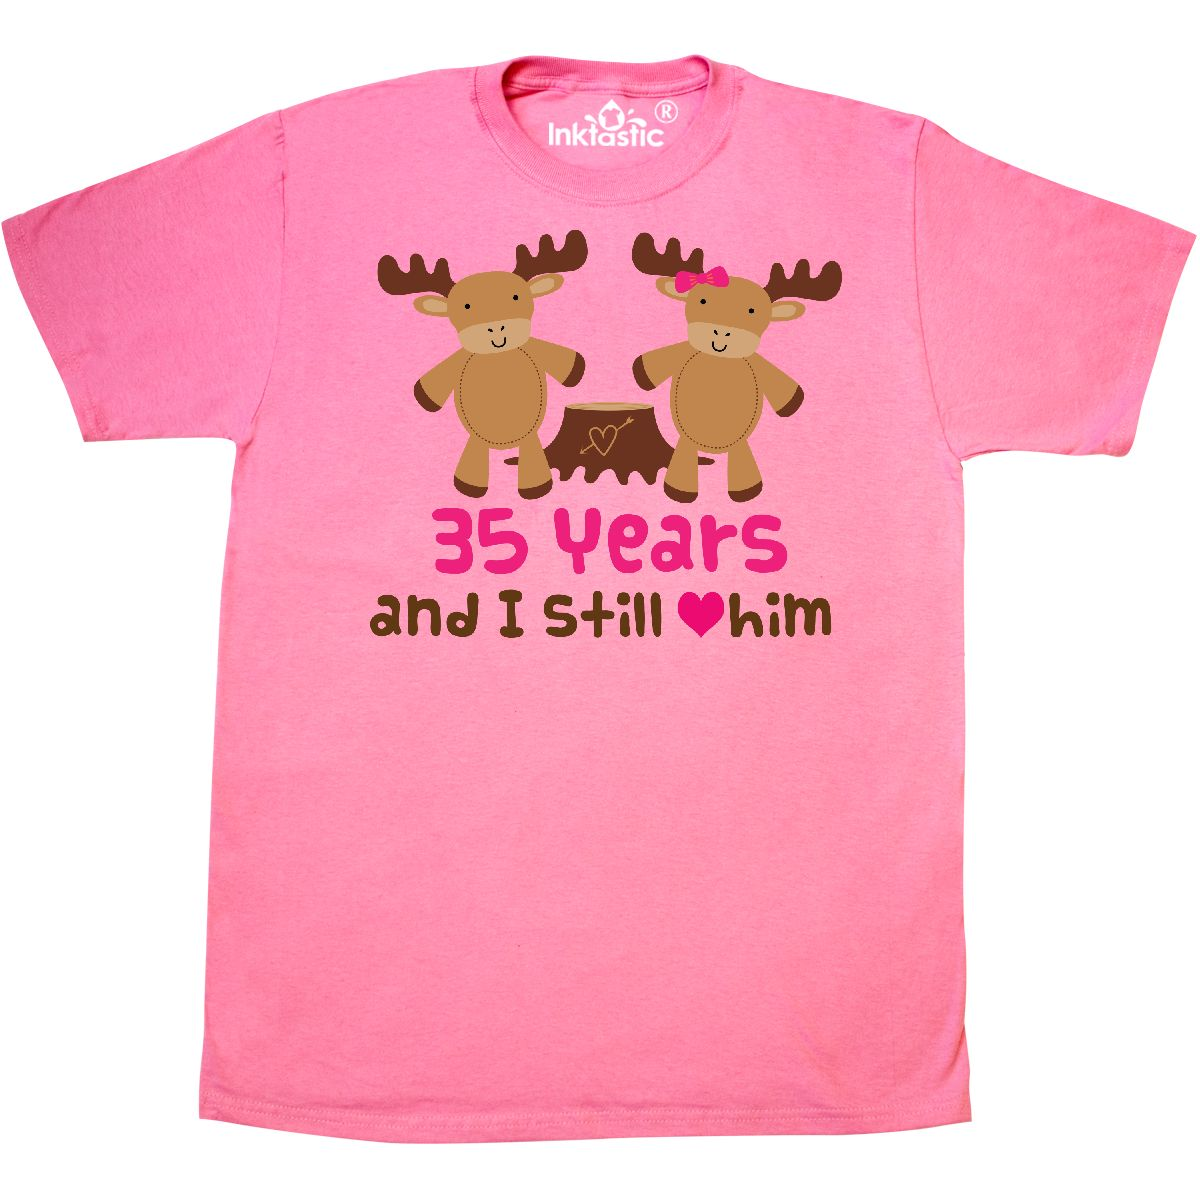 Wedding Anniversary 35 Years Gifts: Inktastic Gift For 35th Wedding Anniversary Moose T-Shirt